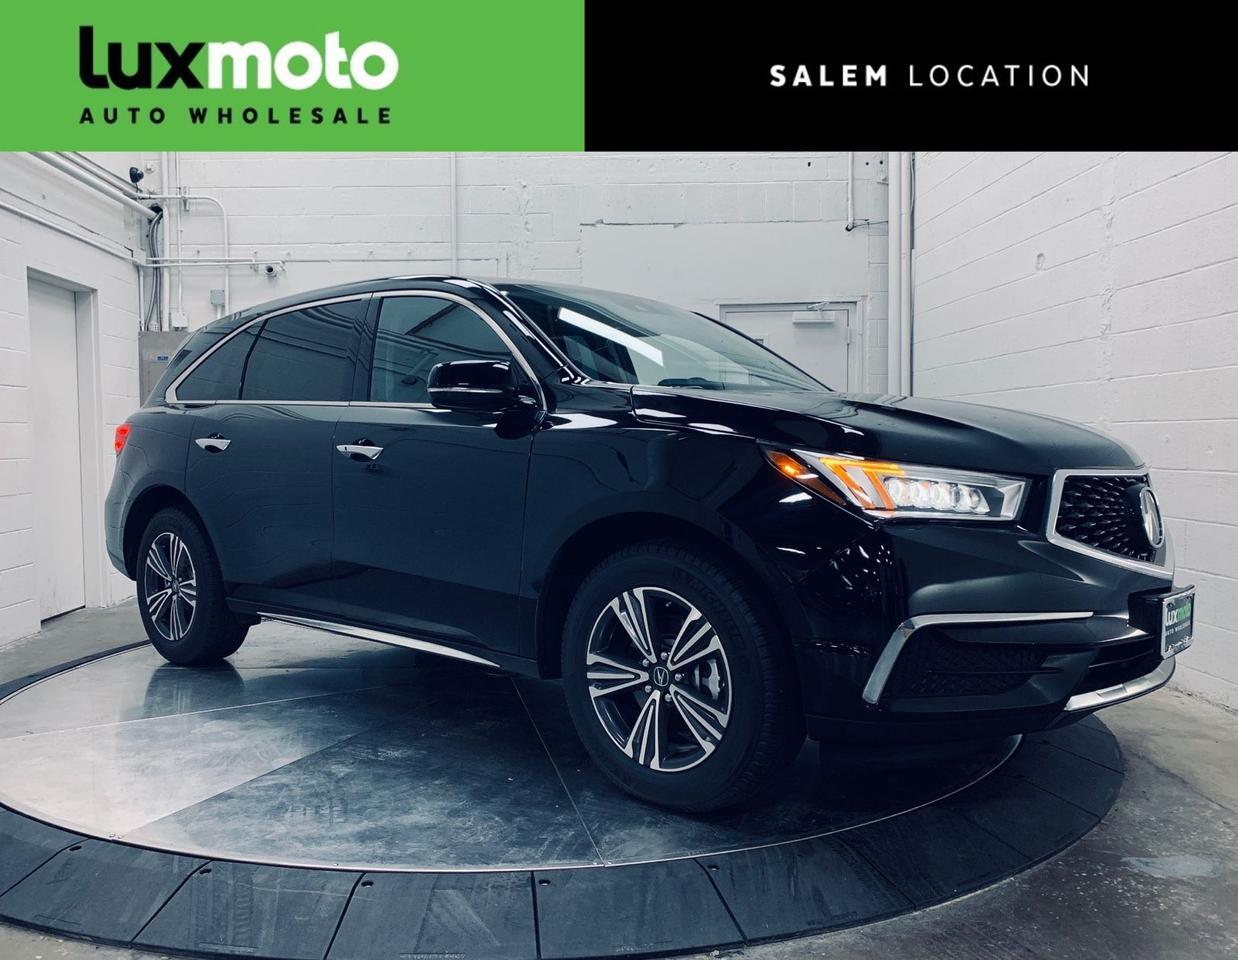 2017 Acura MDX SH-AWD Backup Cam Htd Seats 3rd Row Seat Portland OR